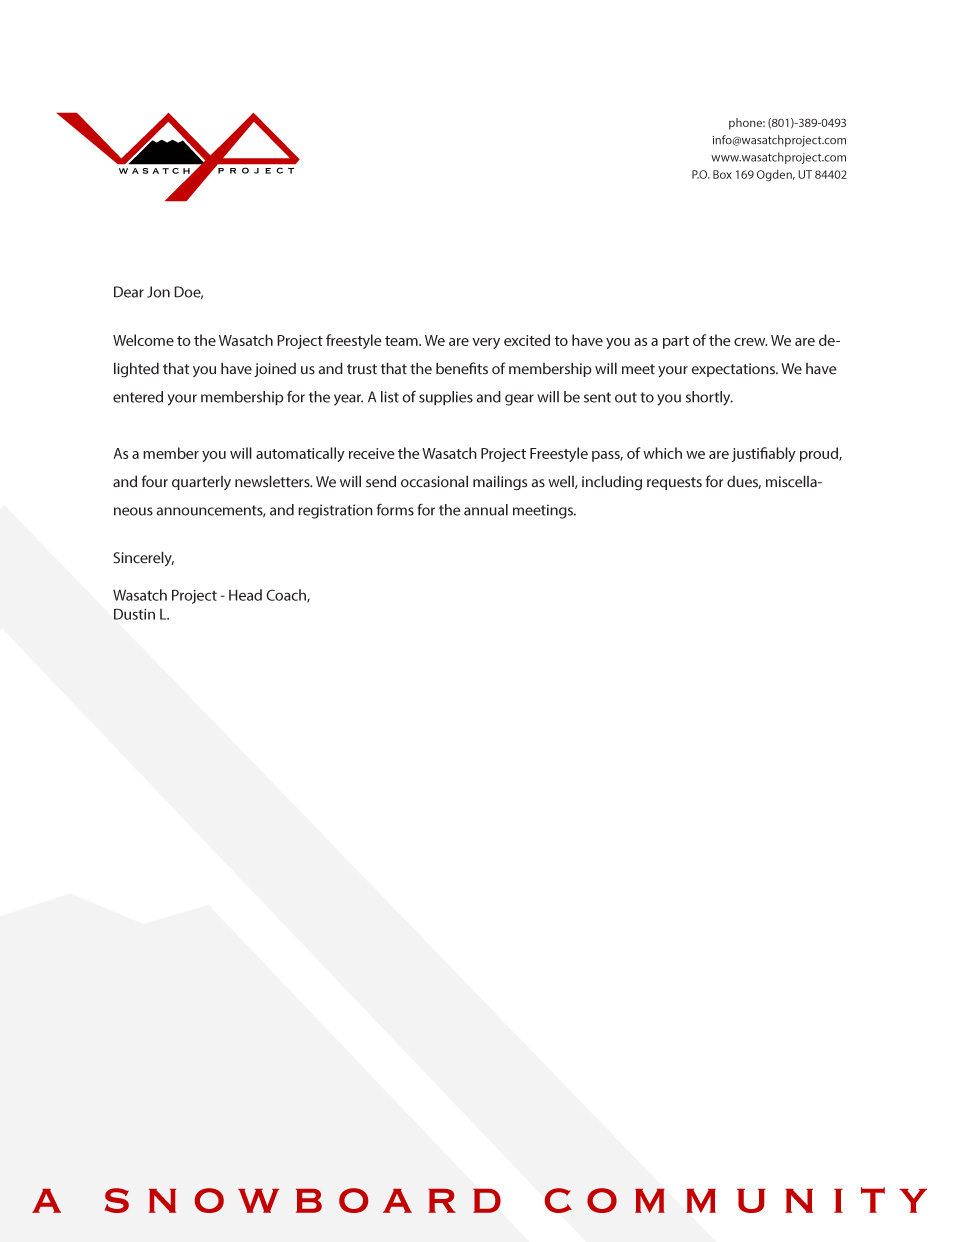 Wasatch Project Letterhead